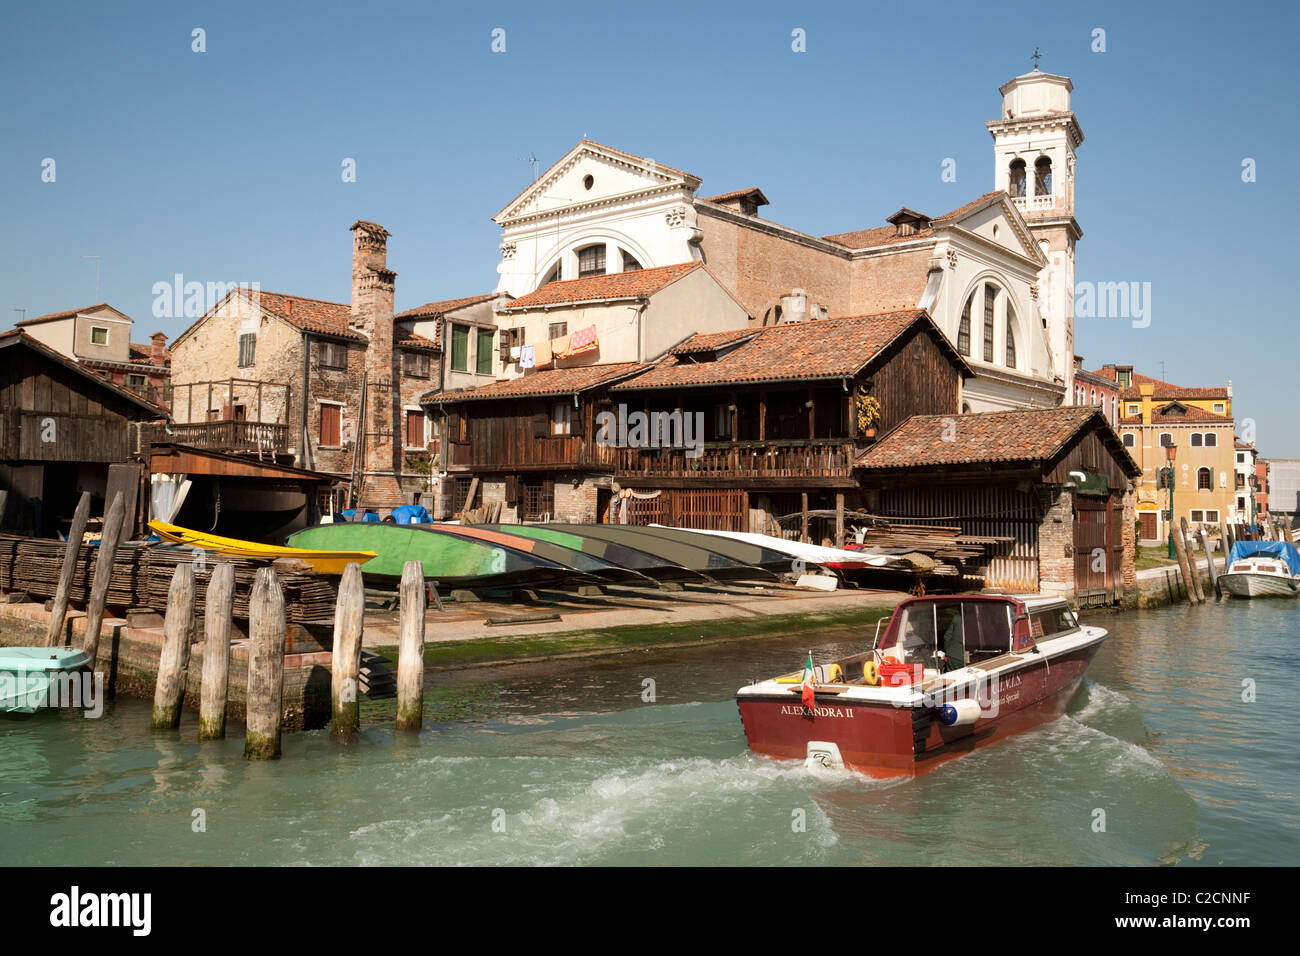 A gondola boatyard on the banks of a canal, Venice, Italy - Stock Image